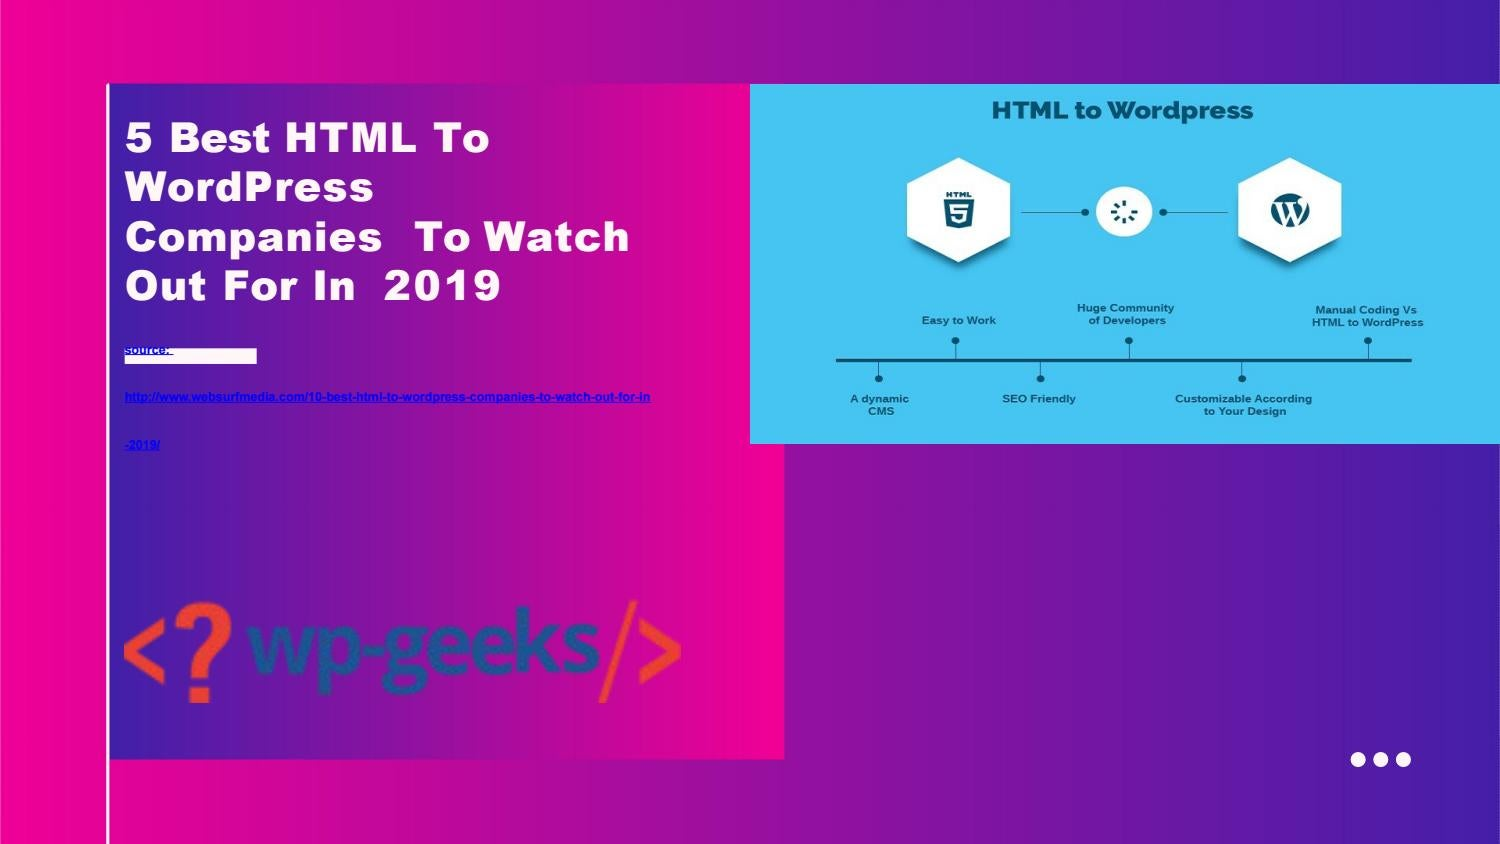 5 Best HTML To WordPress Companies To Watch Out For In 2019 by